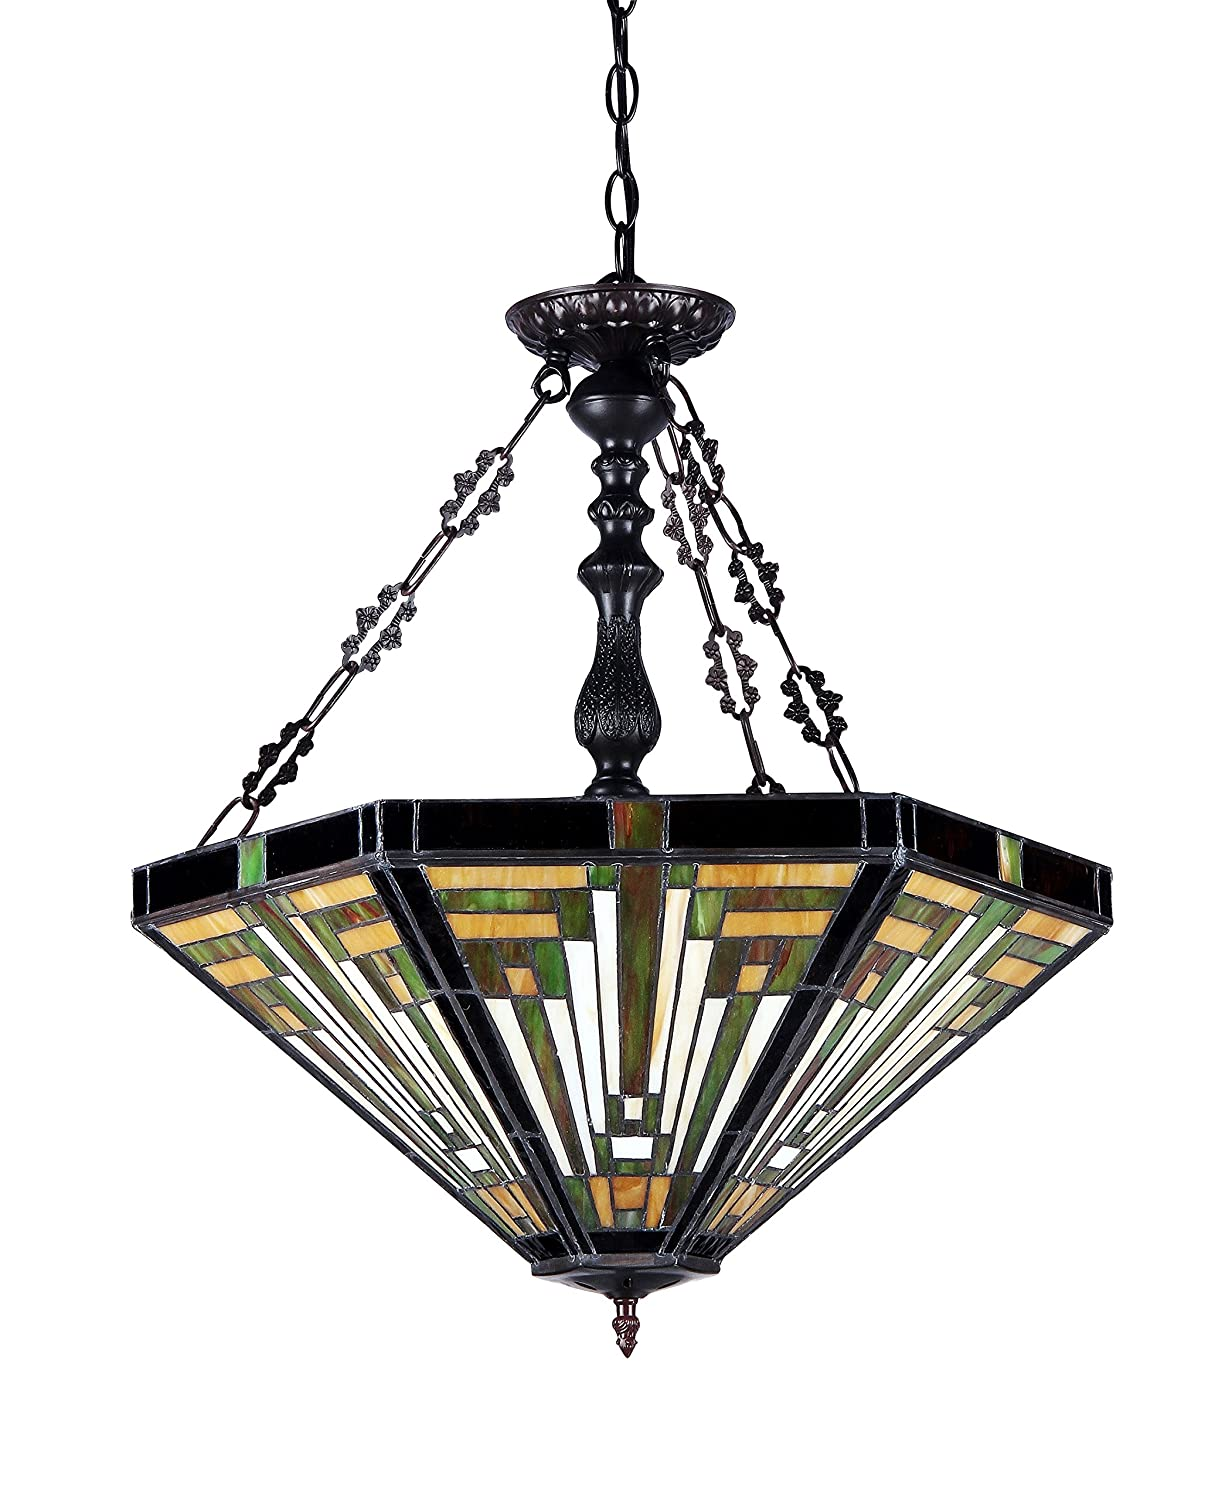 Chloe Lighting CH33359MR22-UH3 Innes Tiffany-Style Mission 3-Light Inverted Ceiling Pendant with Fixture with Shade, 24.3 x 21.7 x 21.7 , Bronze